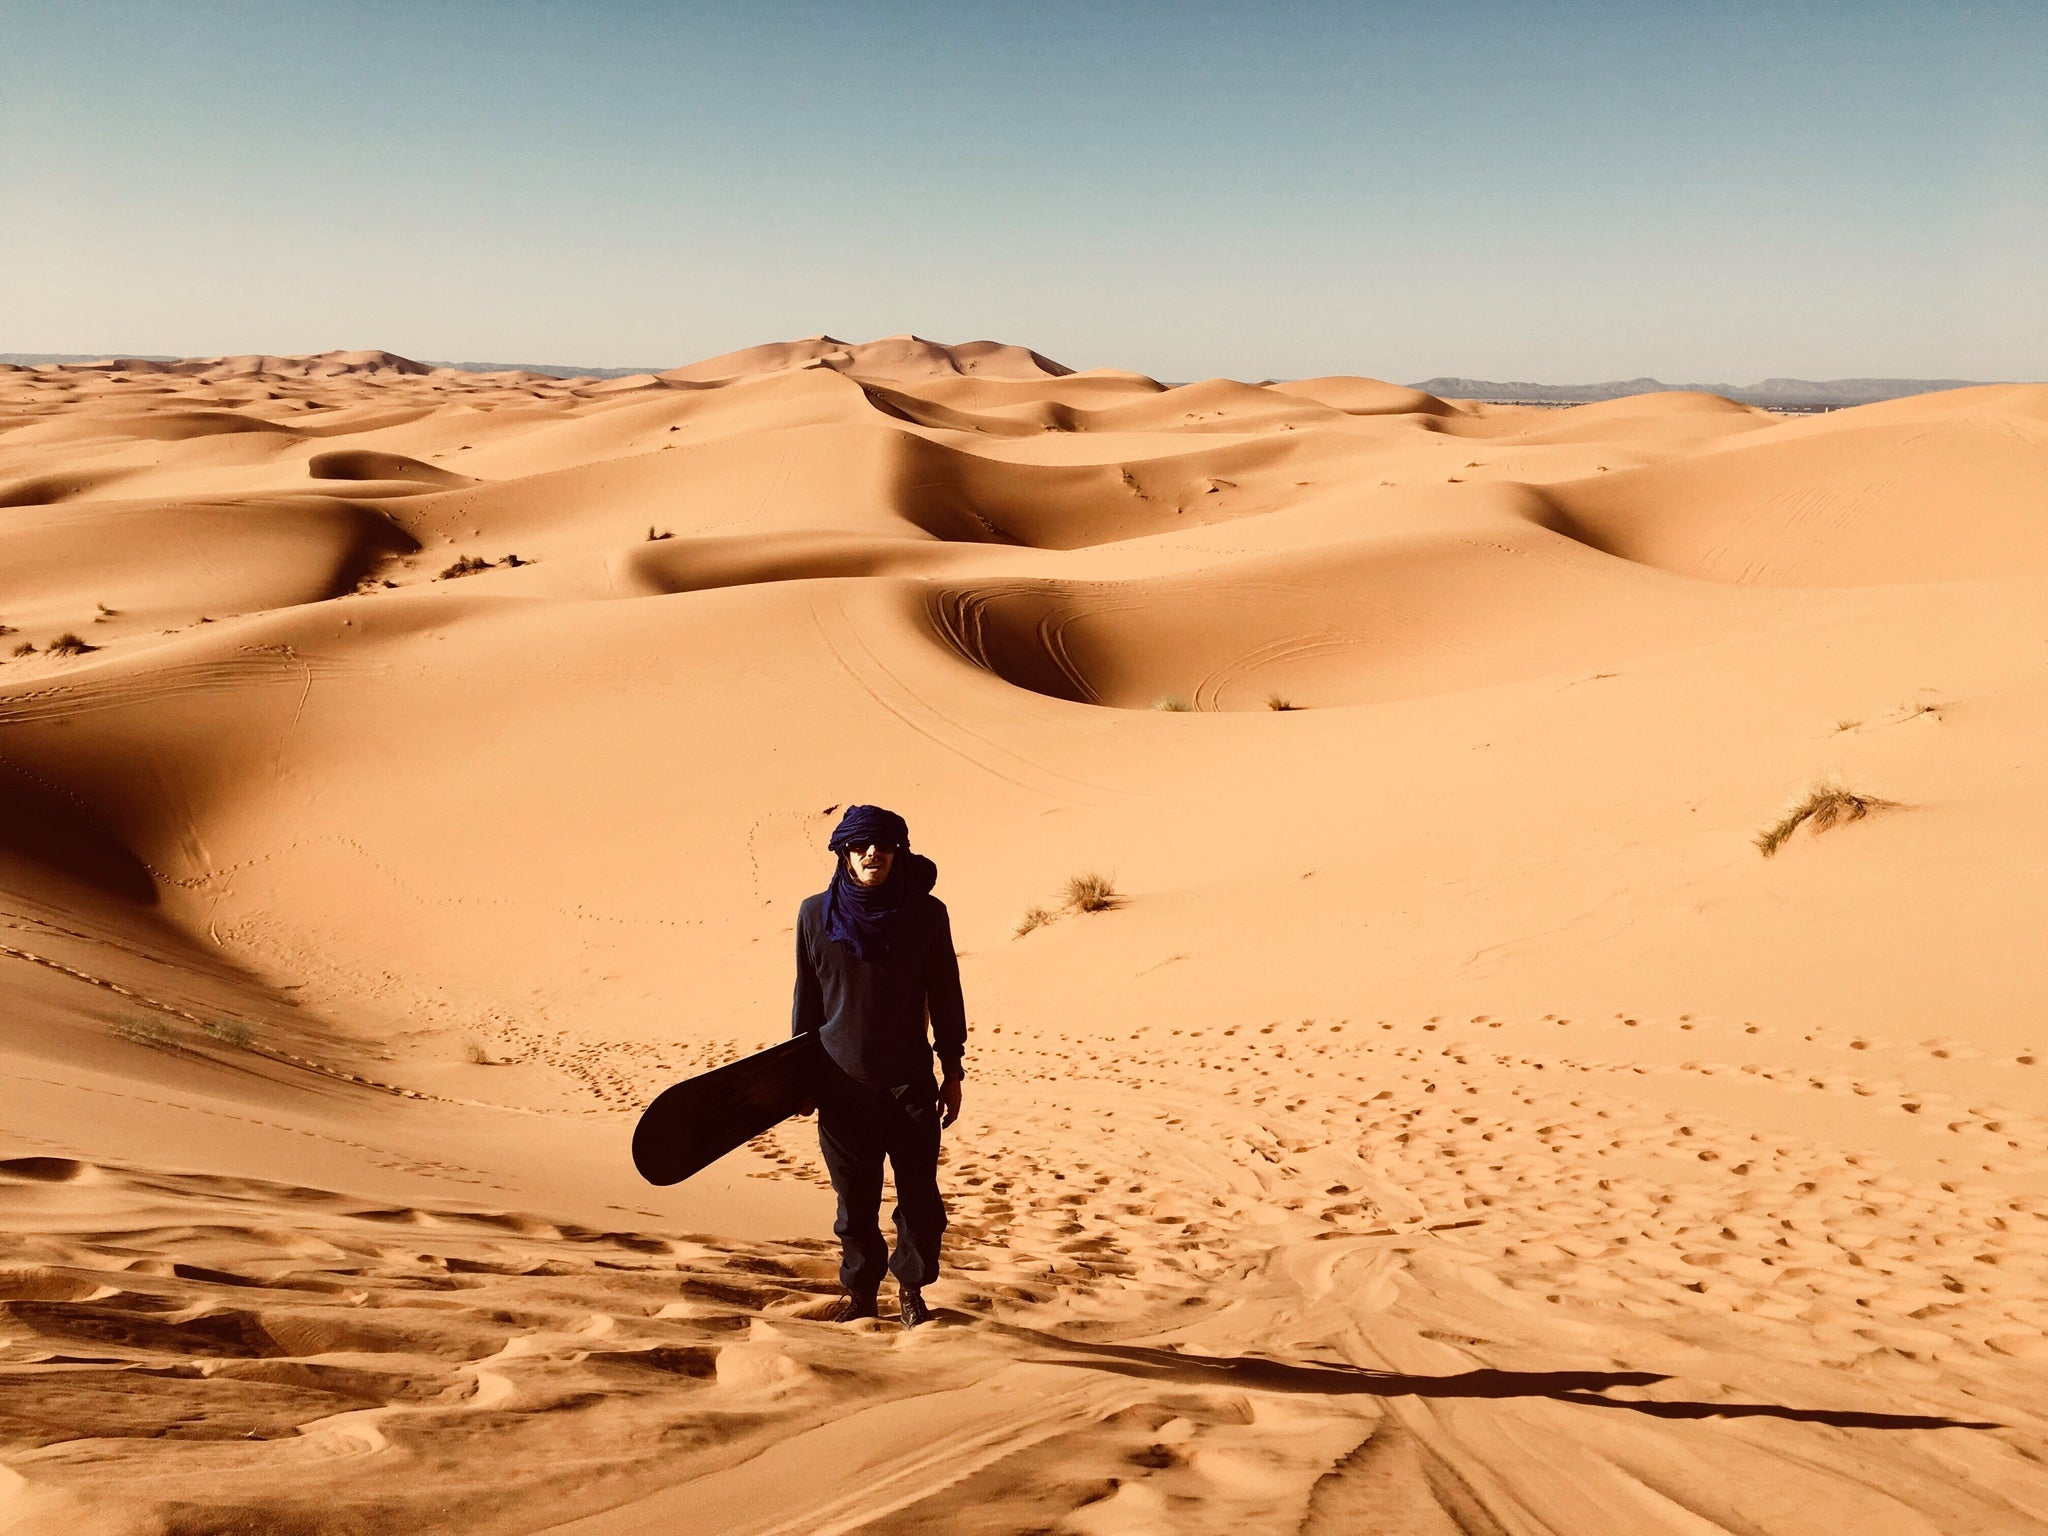 Boy sand boarding in the desert